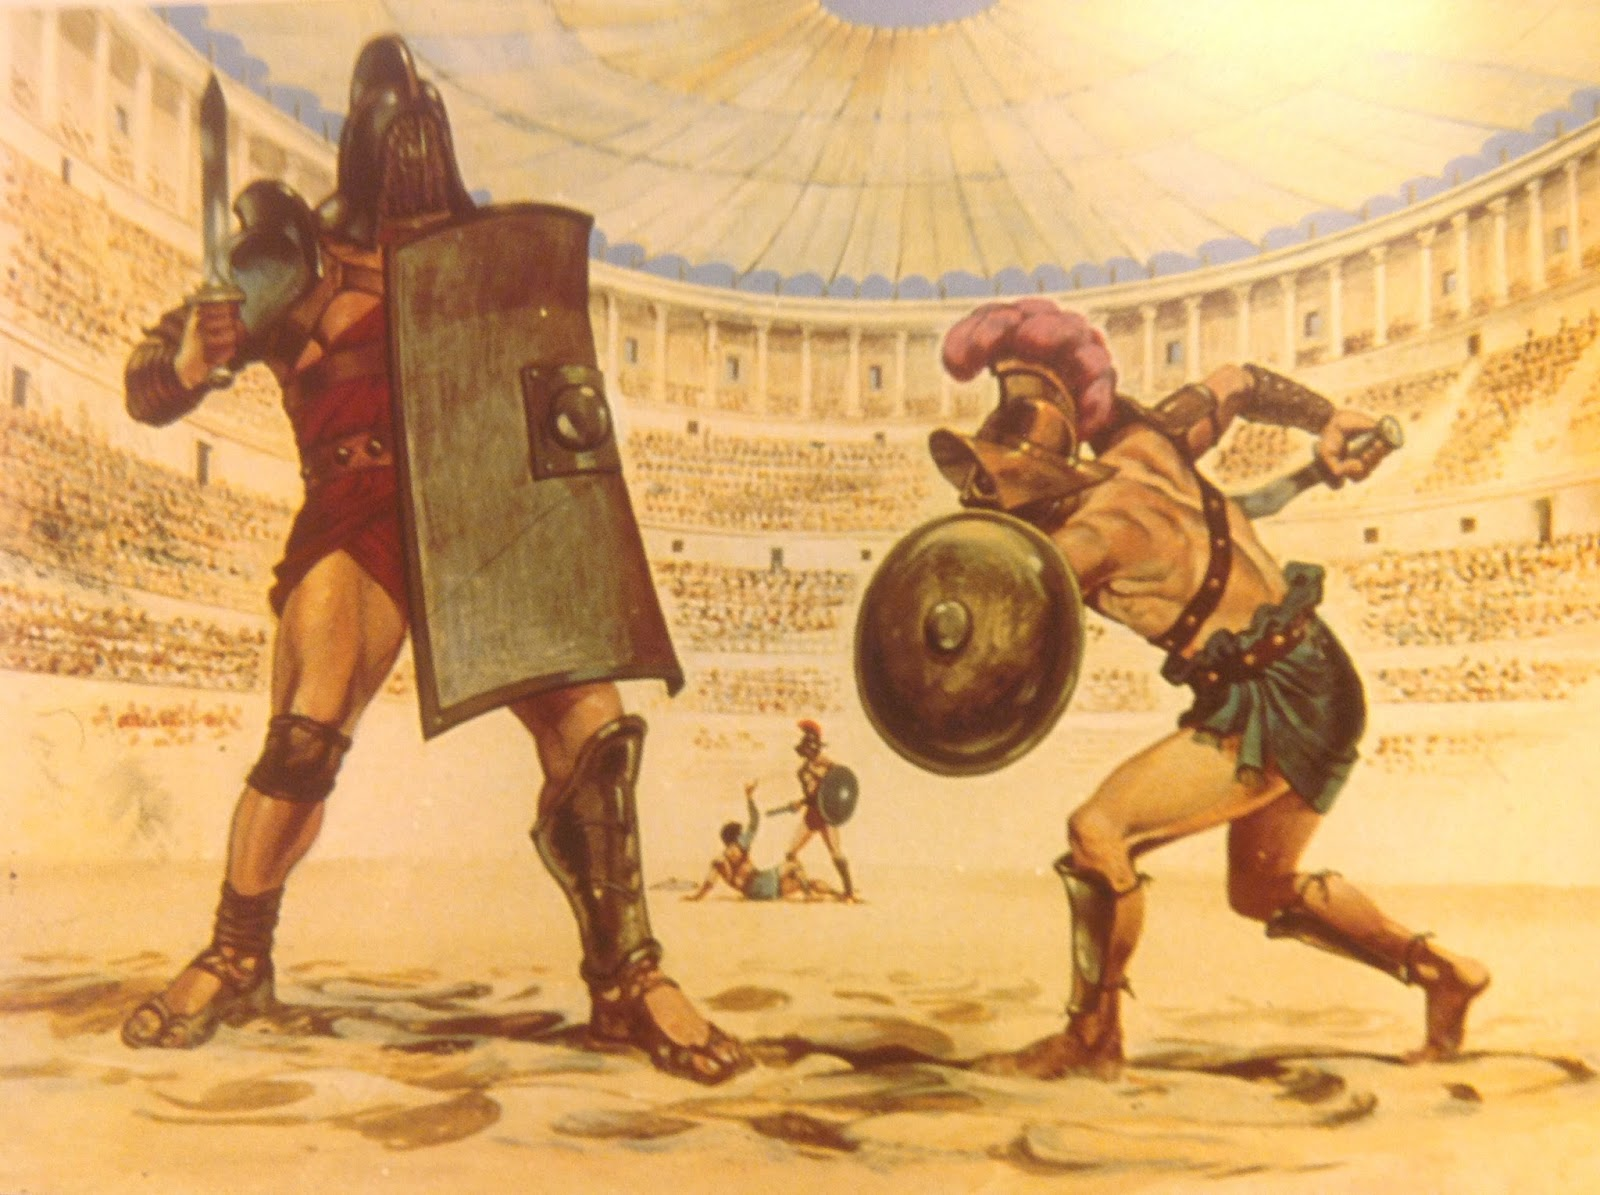 the colosseum and gladiators essay Custom colosseum essay writing service || colosseum essay samples, help the gladiatorial games probably originated as part of the funeral rites for prominent romans, but they eventually became the most popular form of entertainment which is known to us as roman games.